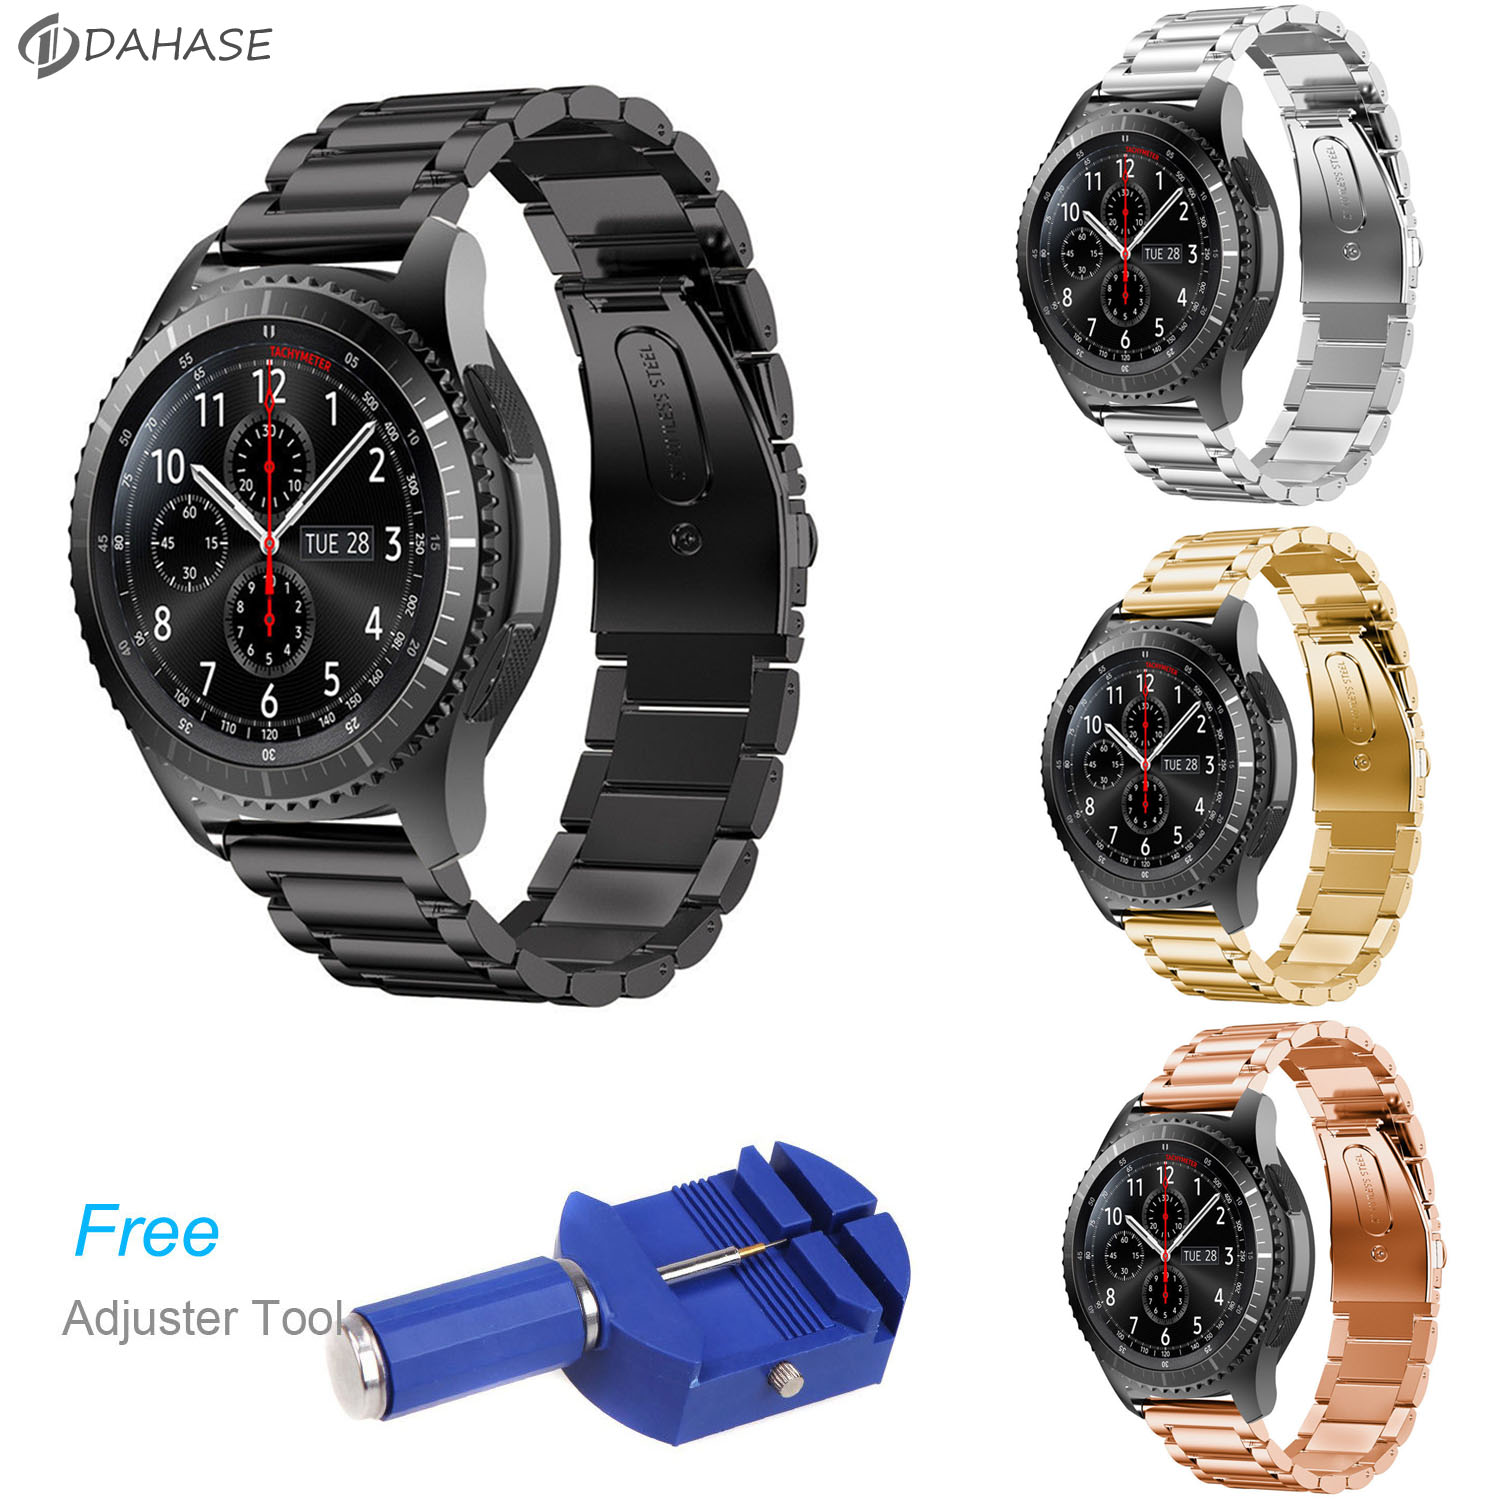 DAHASE Stainless Steel font b Watch b font Band for Samsung Gear S3 Frontier Strap for